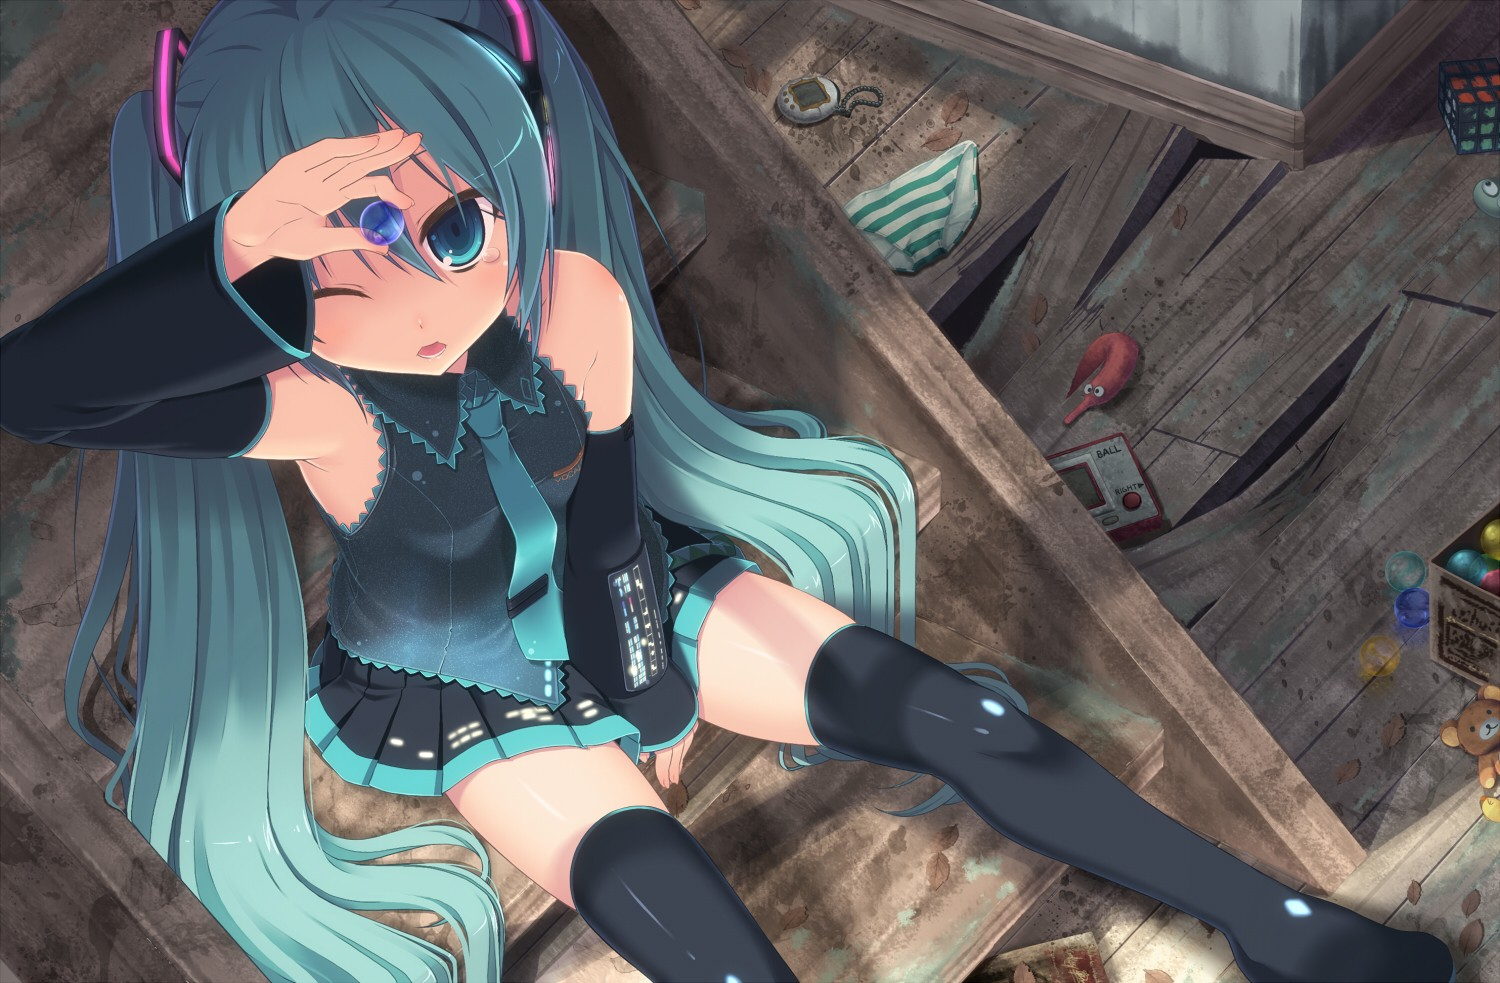 panties vocaloid hatsune miku HD Wallpaper